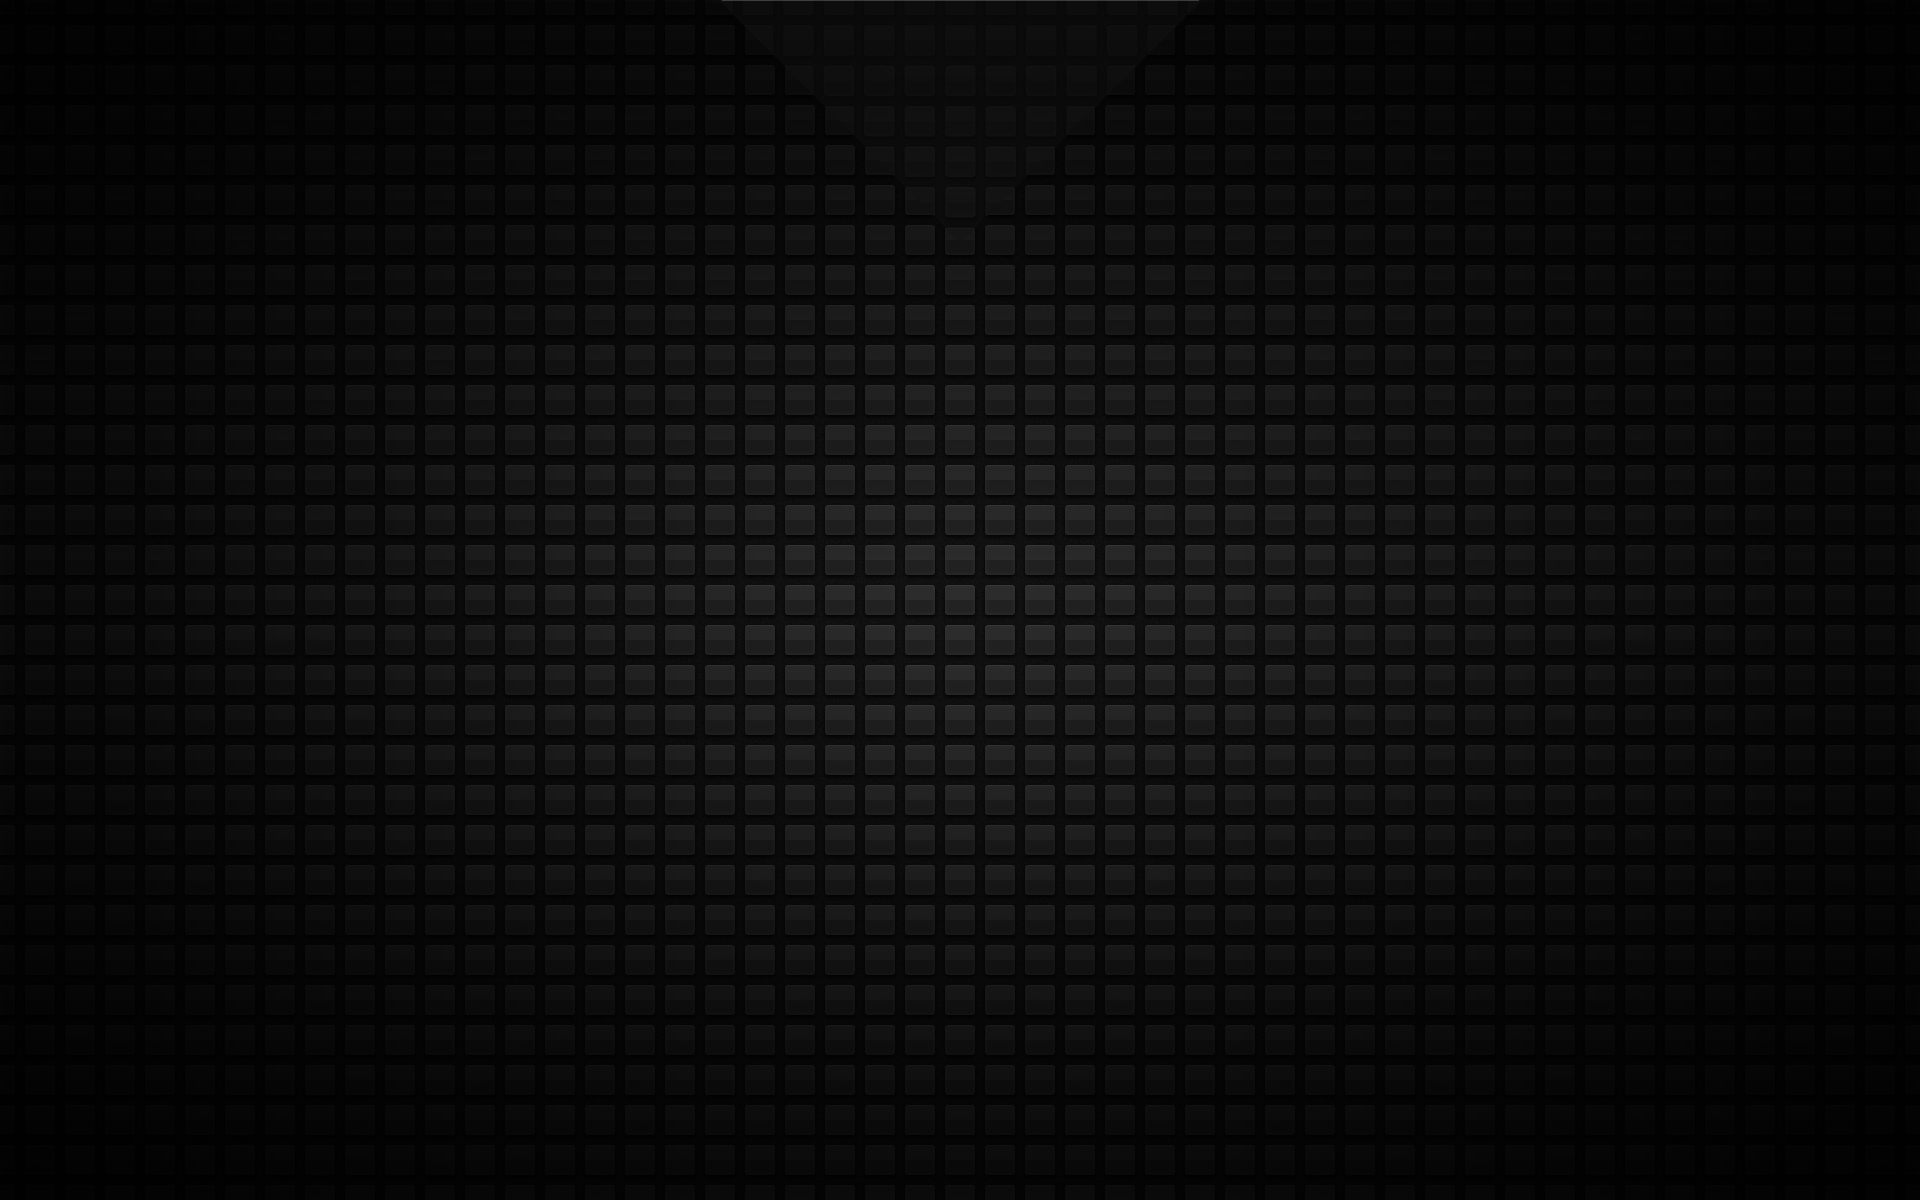 Free Black Background Wallpaper Wallpapersafari